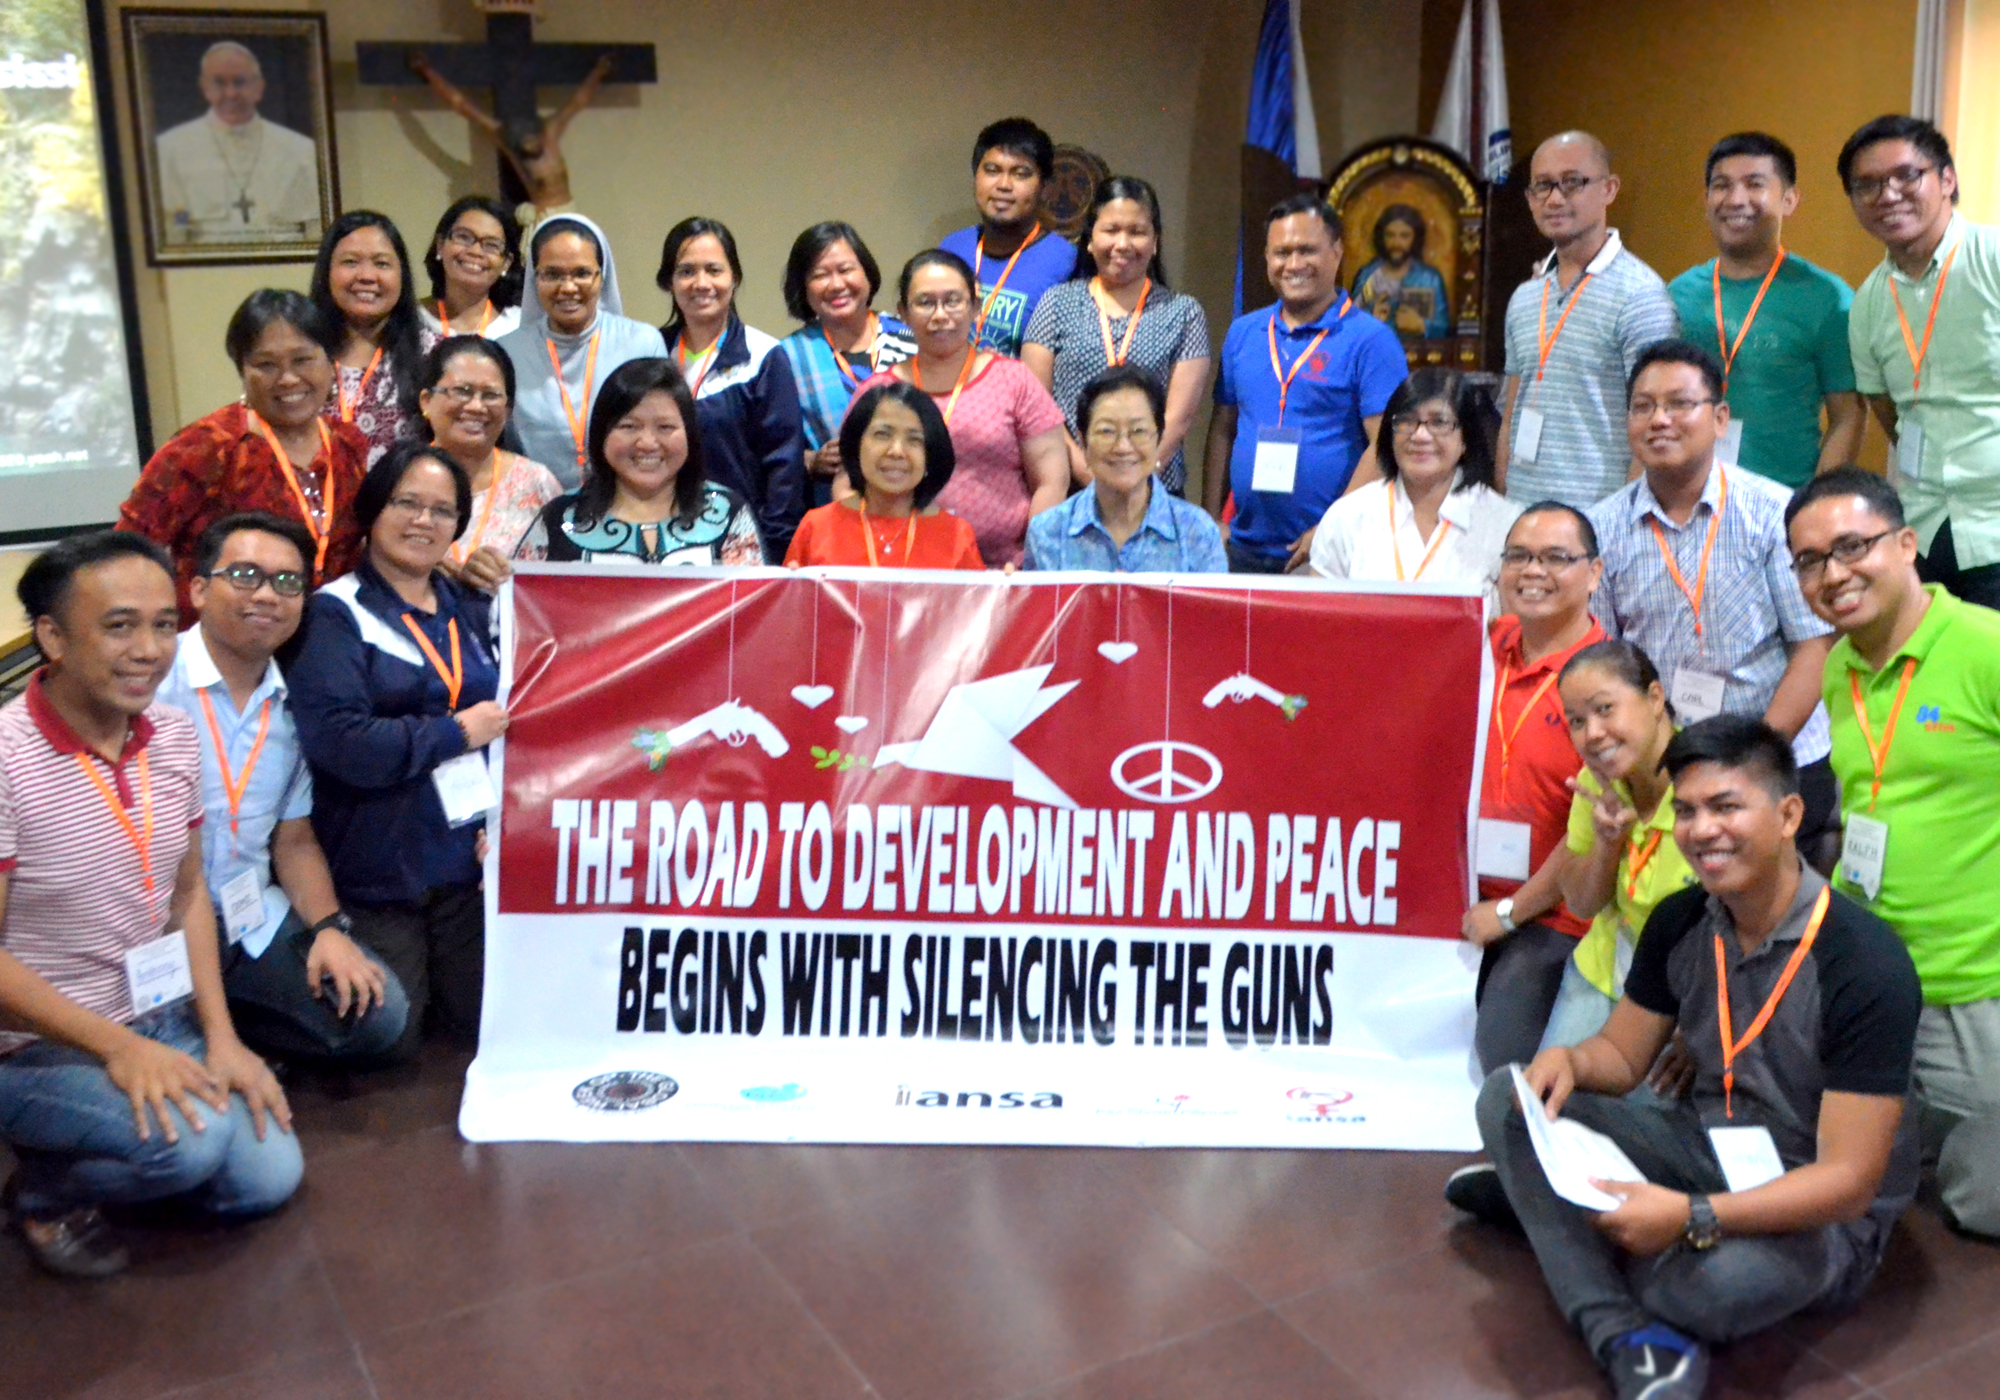 CPE joins global campaigns to end gun violence, ban nuclear weapons; conducts workshops on nonviolence